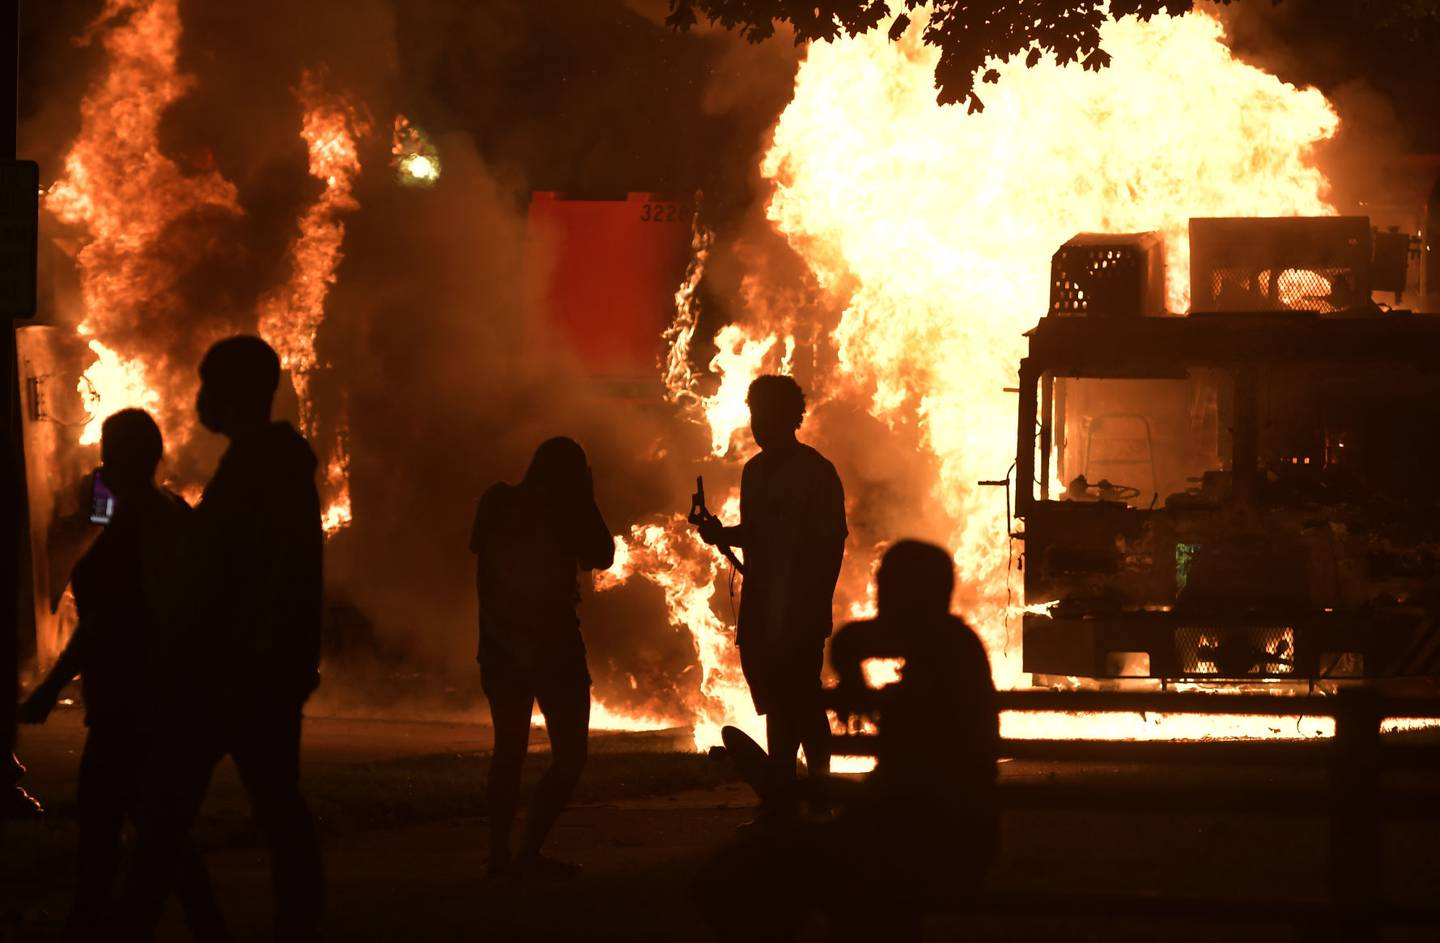 Garbage and dump trucks were set ablaze on Sunday, Aug. 23, 2020 by rioters near the Kenosha County Courthouse where they had been set up to prevent damage to the building.